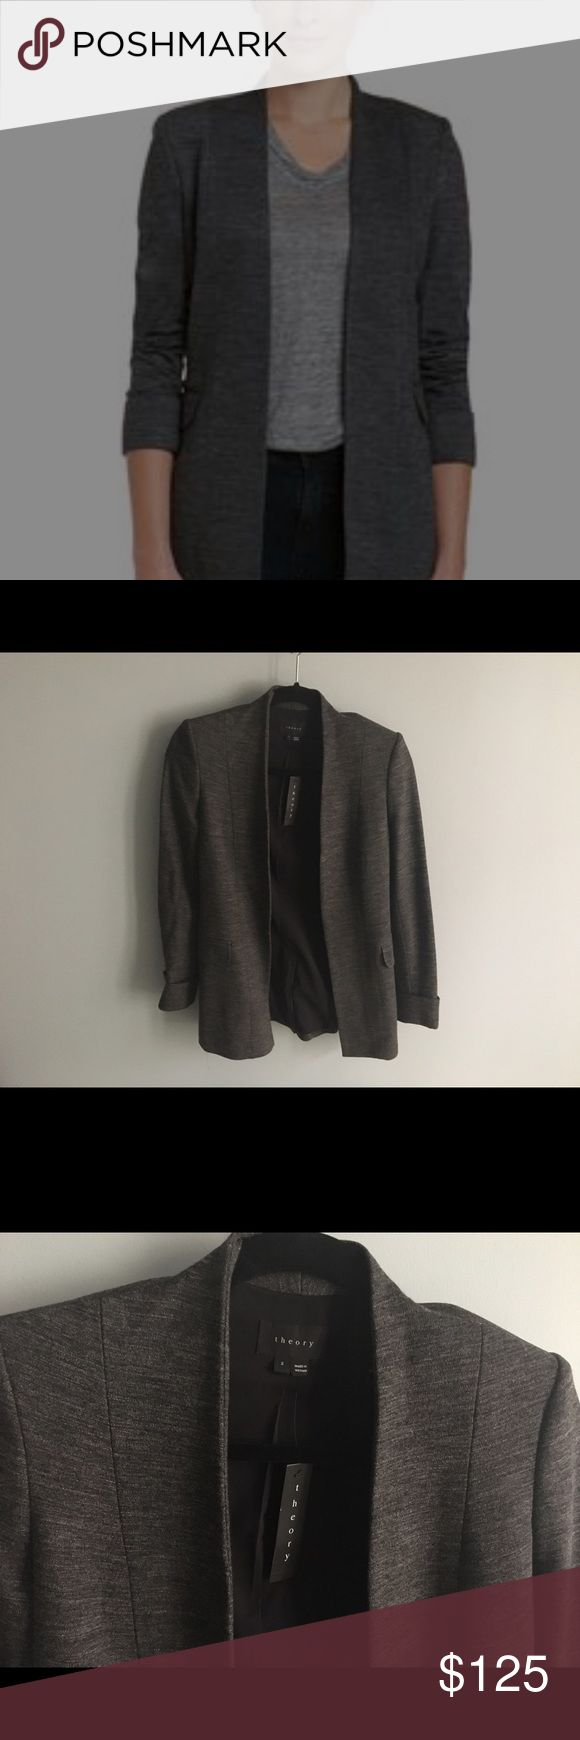 Theory Tivona Blazer Brand new, never worn. A flattering, slim silhouette and open front define this polished blazer in lightweight suiting fabric. Shawl lapel, open front, folded cuffs, back vent, fully lined. Theory Jackets & Coats Blazers